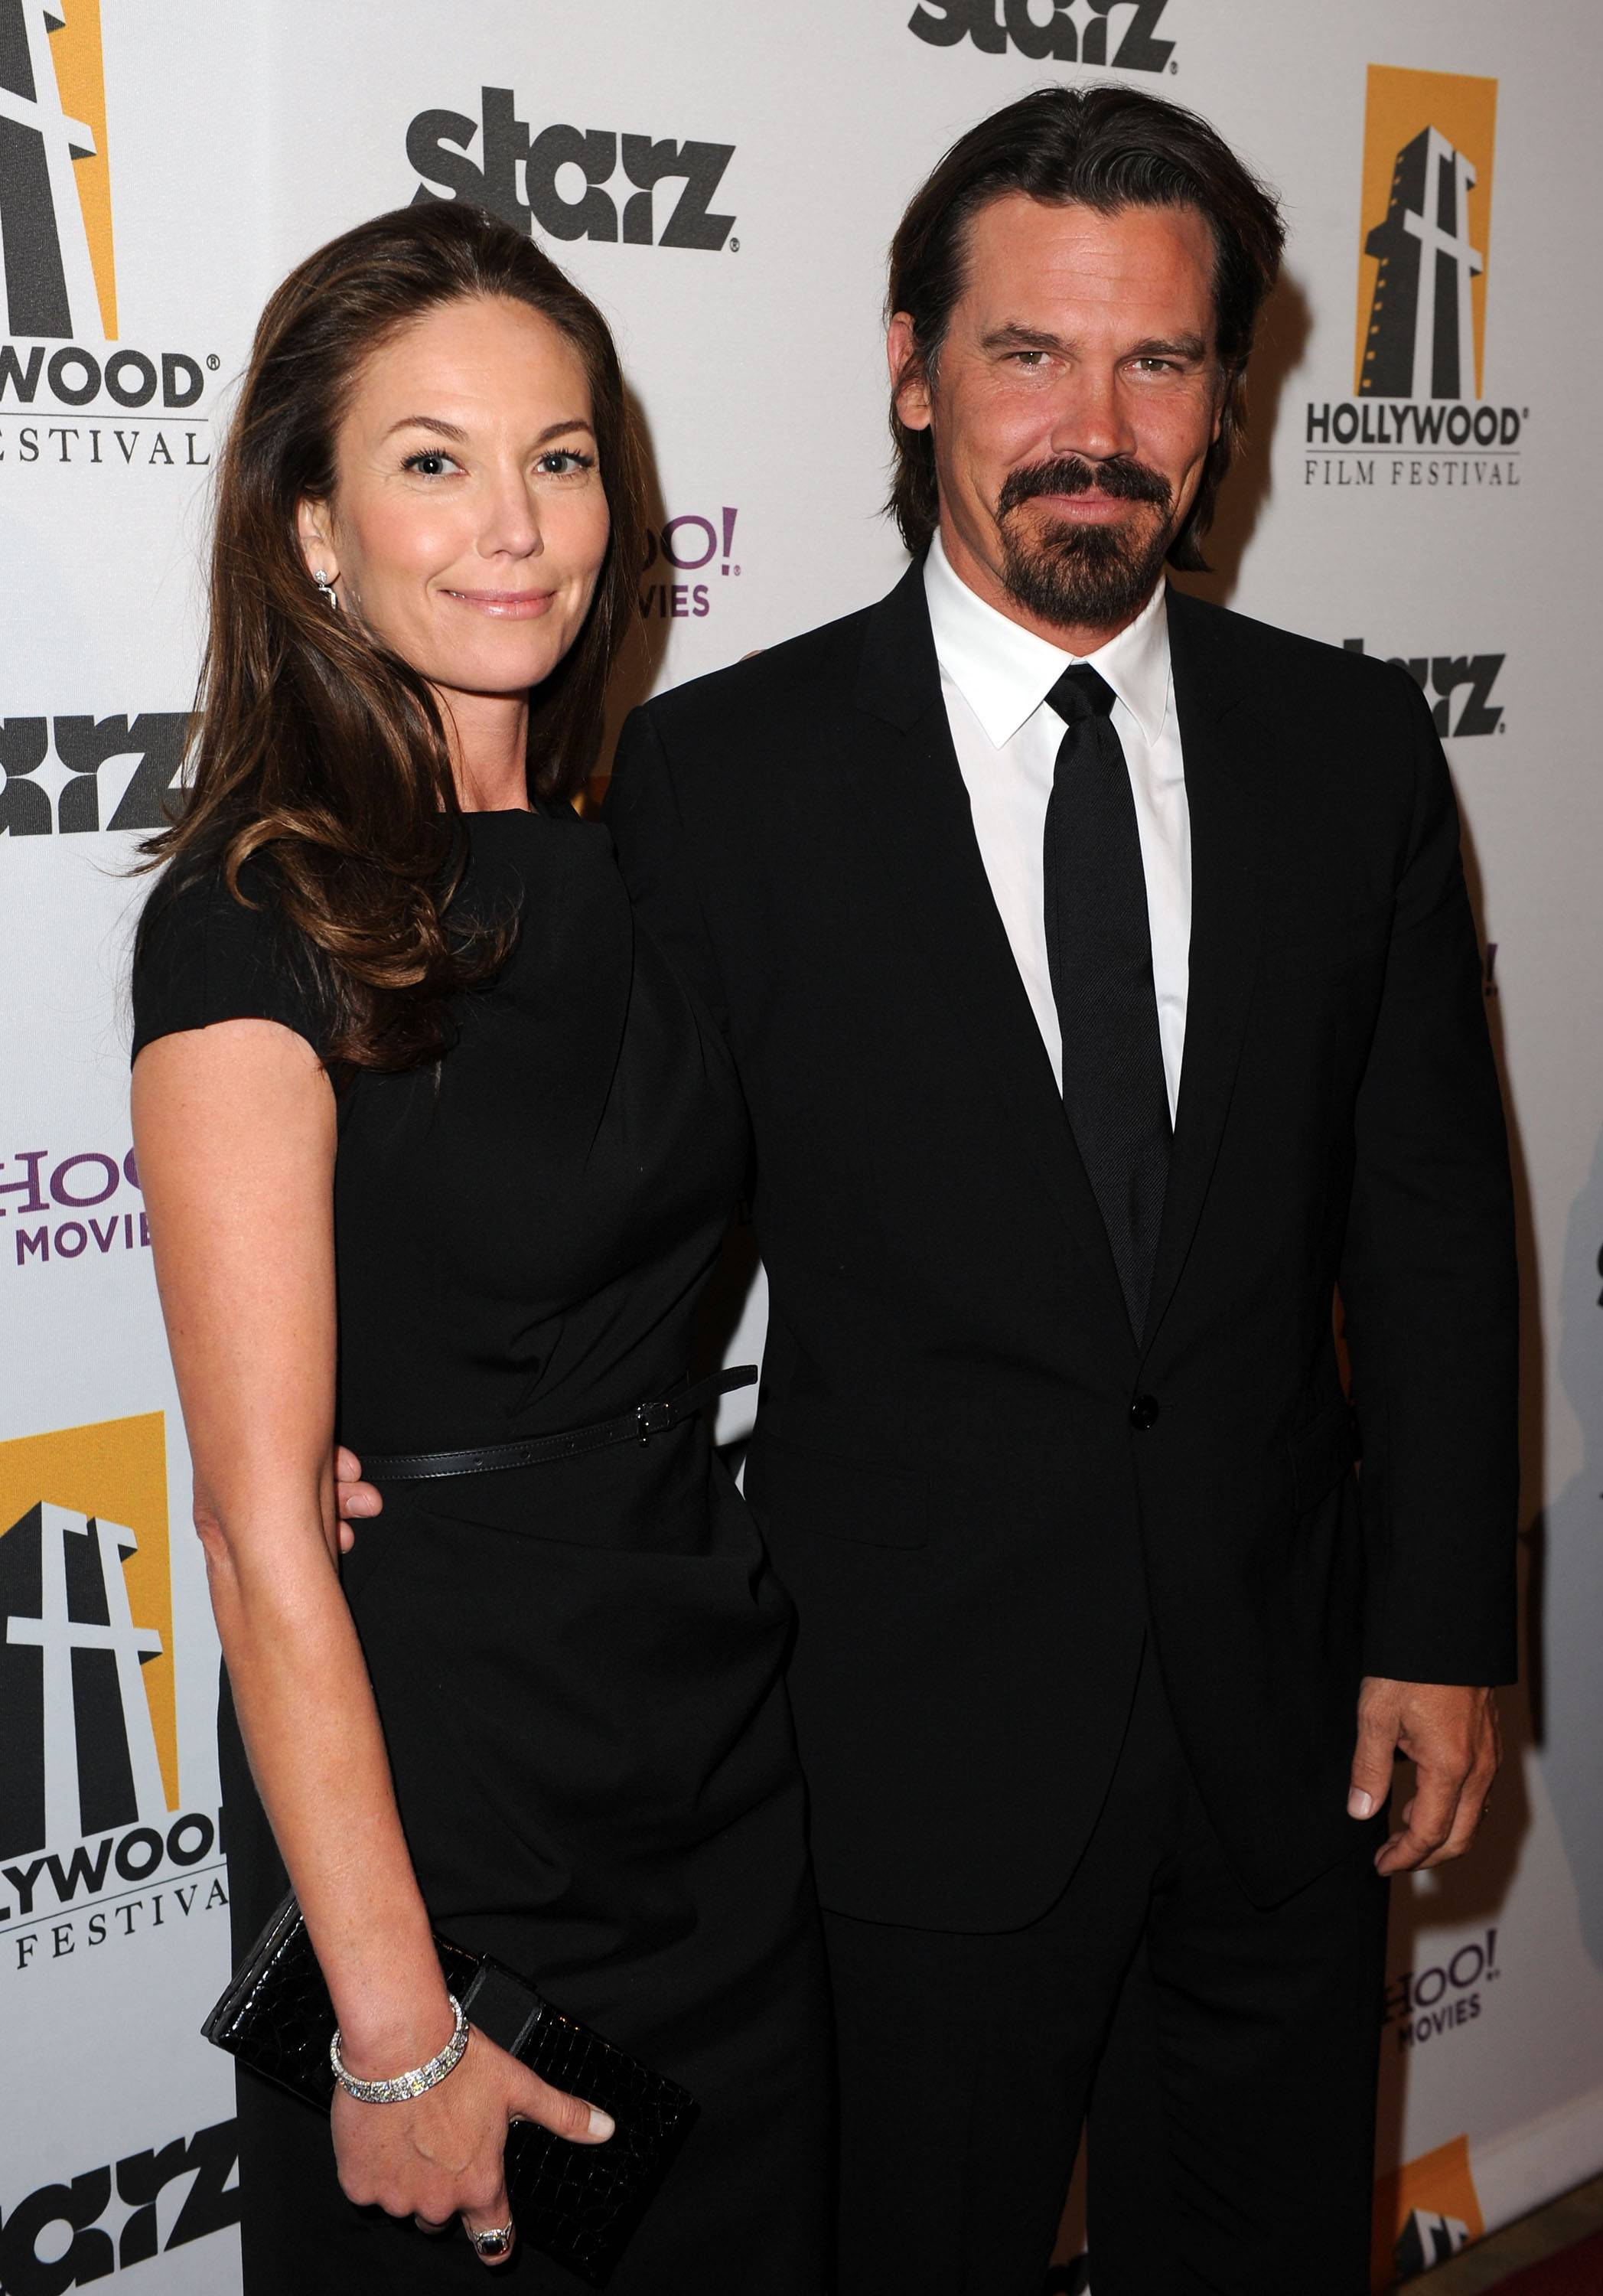 Actress Diane Lane (L) and actor Josh Brolin arrive at the 14th annual Hollywood Awards Gala at The Beverly Hilton Hotel on October 25, 2010 in Beverly Hills, California.